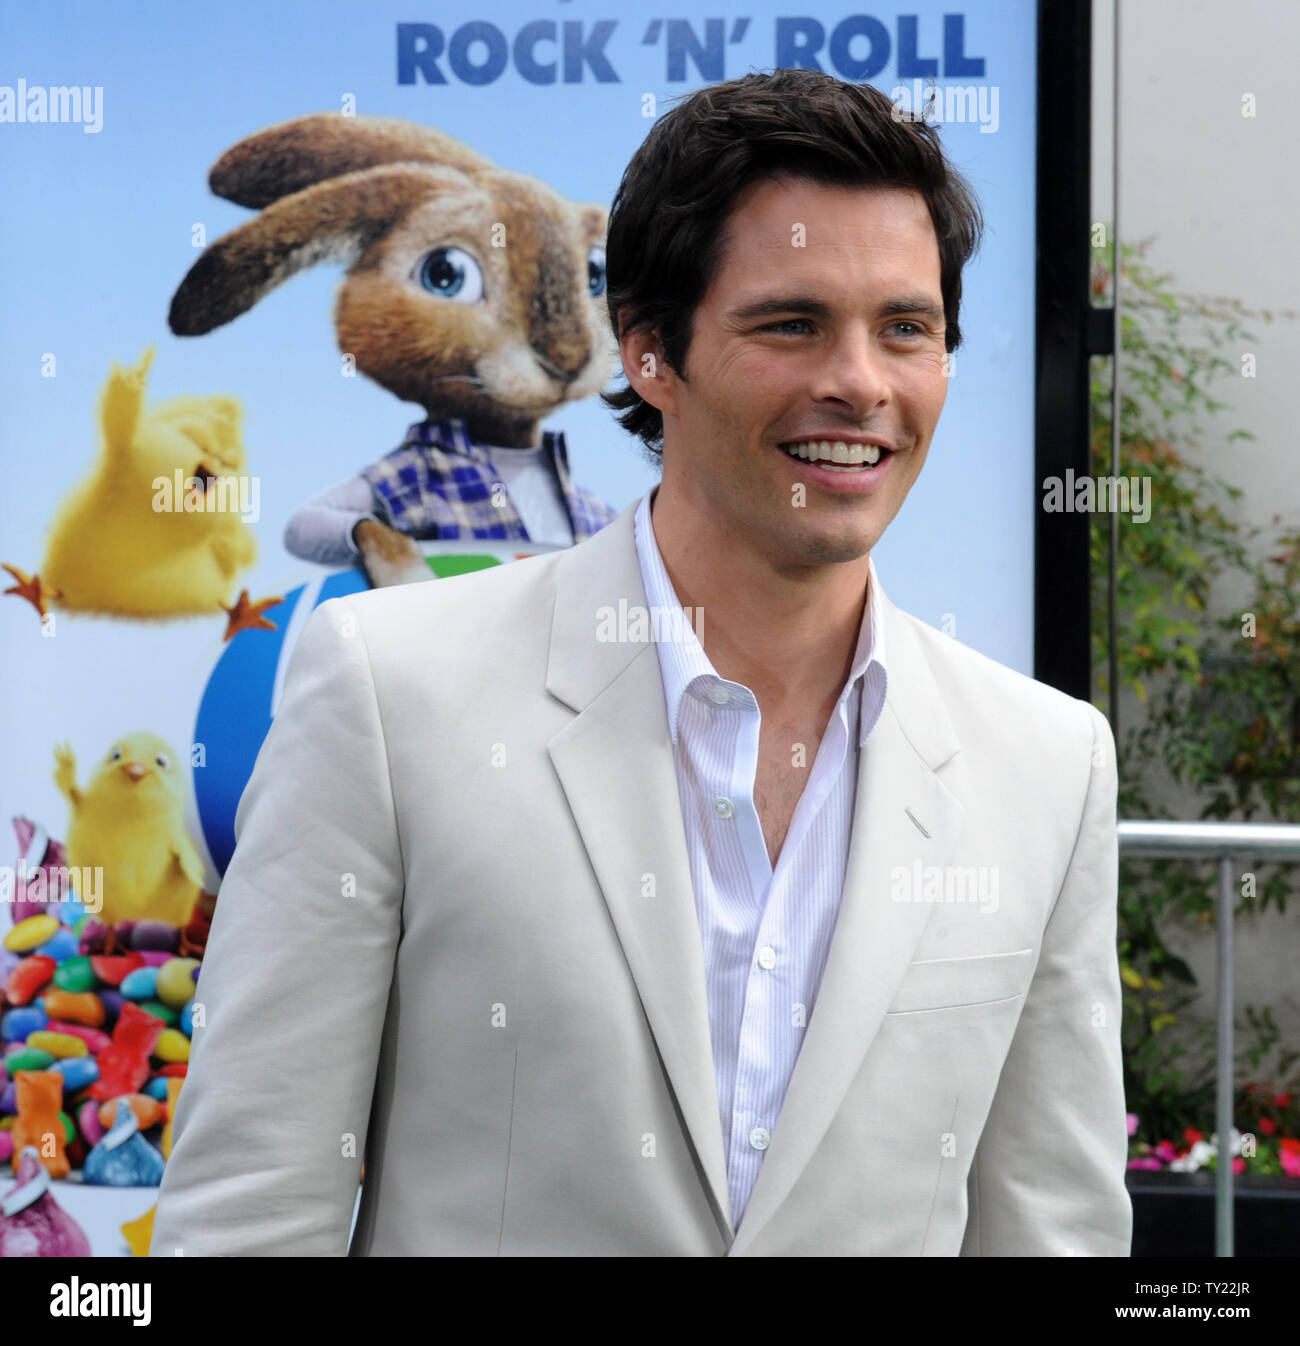 """Actor James Marsden, the voice of Fred in the animated motion picture comedy """"Hop"""", arrives at the premiere of film at Universal Studios in Universal City, California on March 27, 2011.   UPI/Jim Ruymen Stock Photo"""